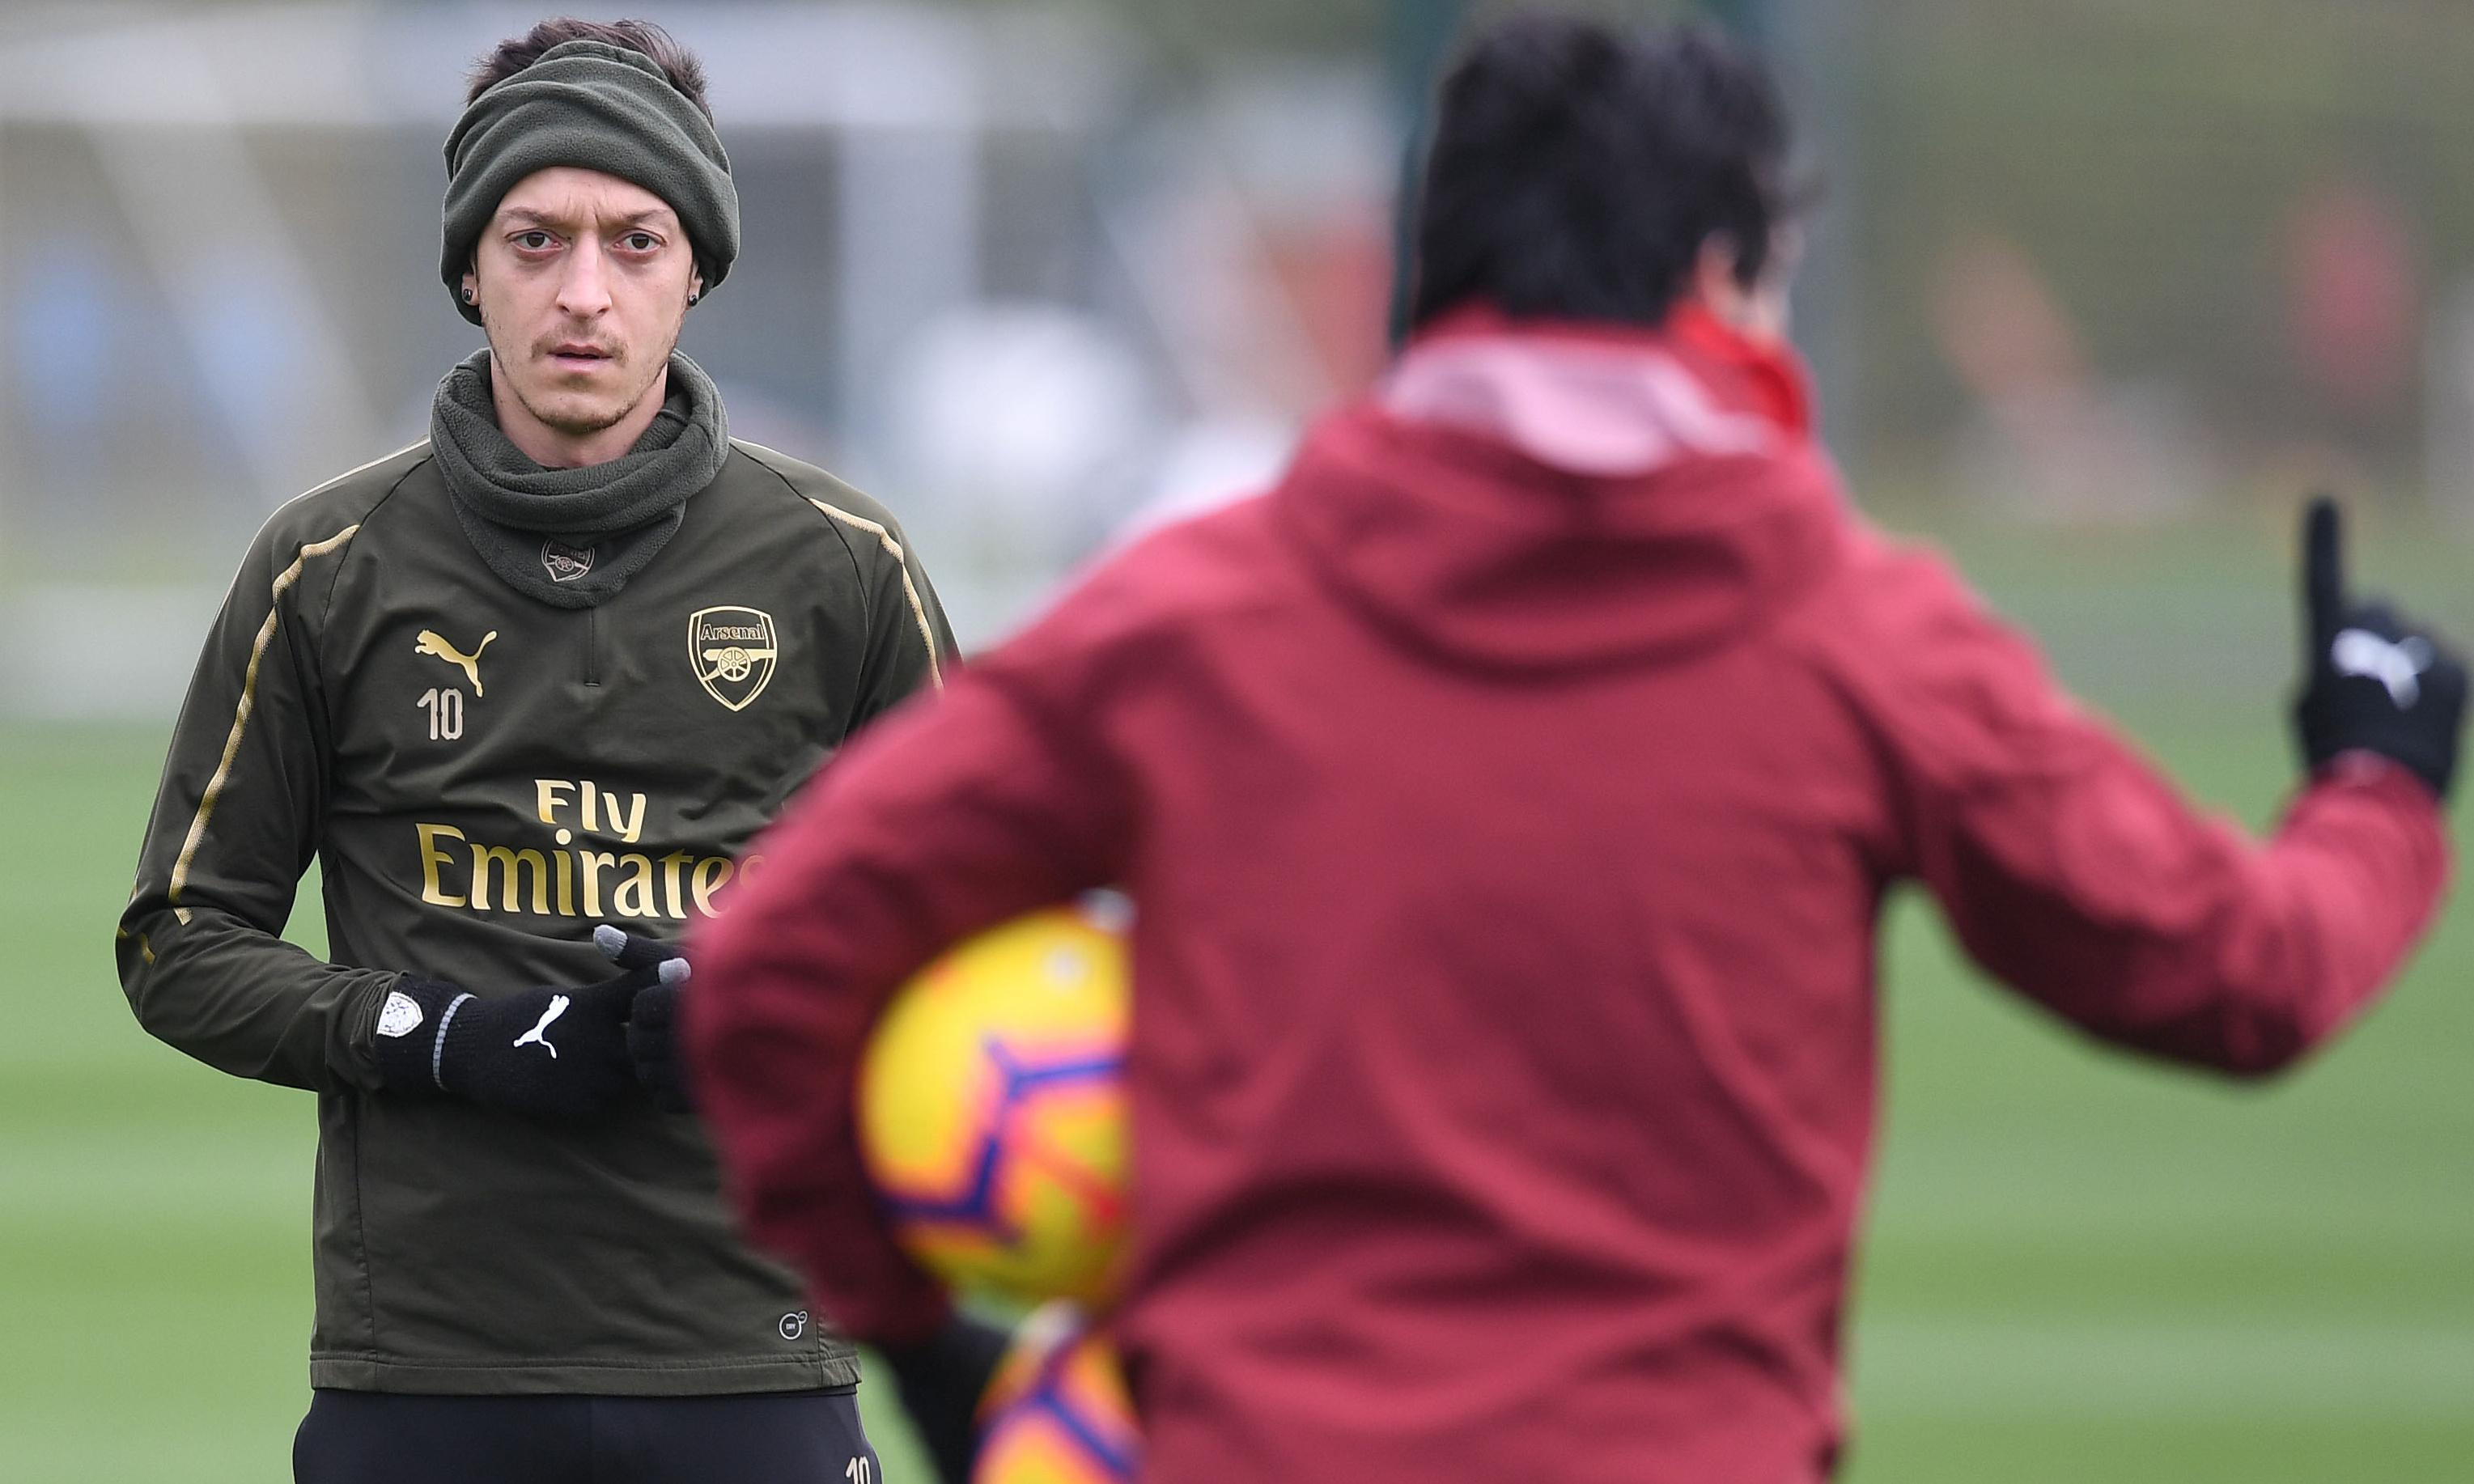 Mesut Özil's Arsenal future is in his own hands, says Unai Emery